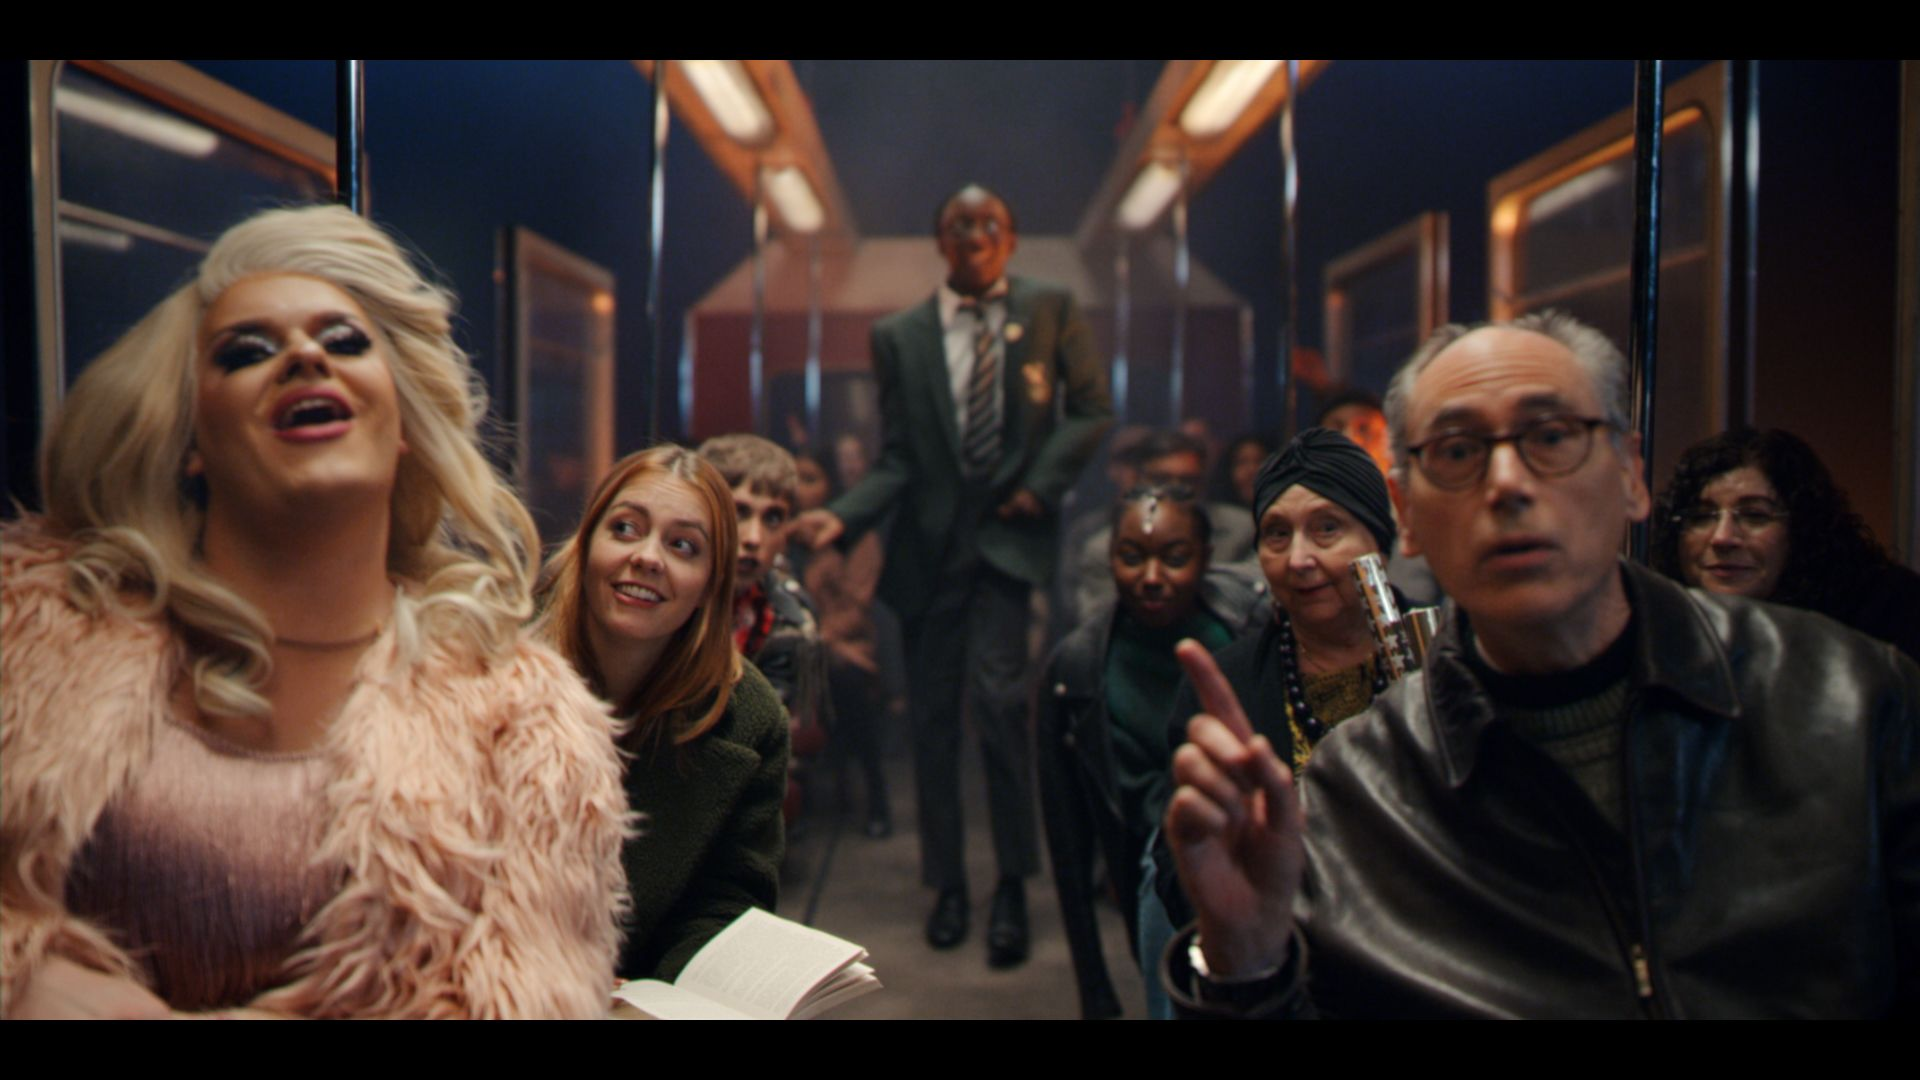 The Boots Christmas advert for 2019 is here